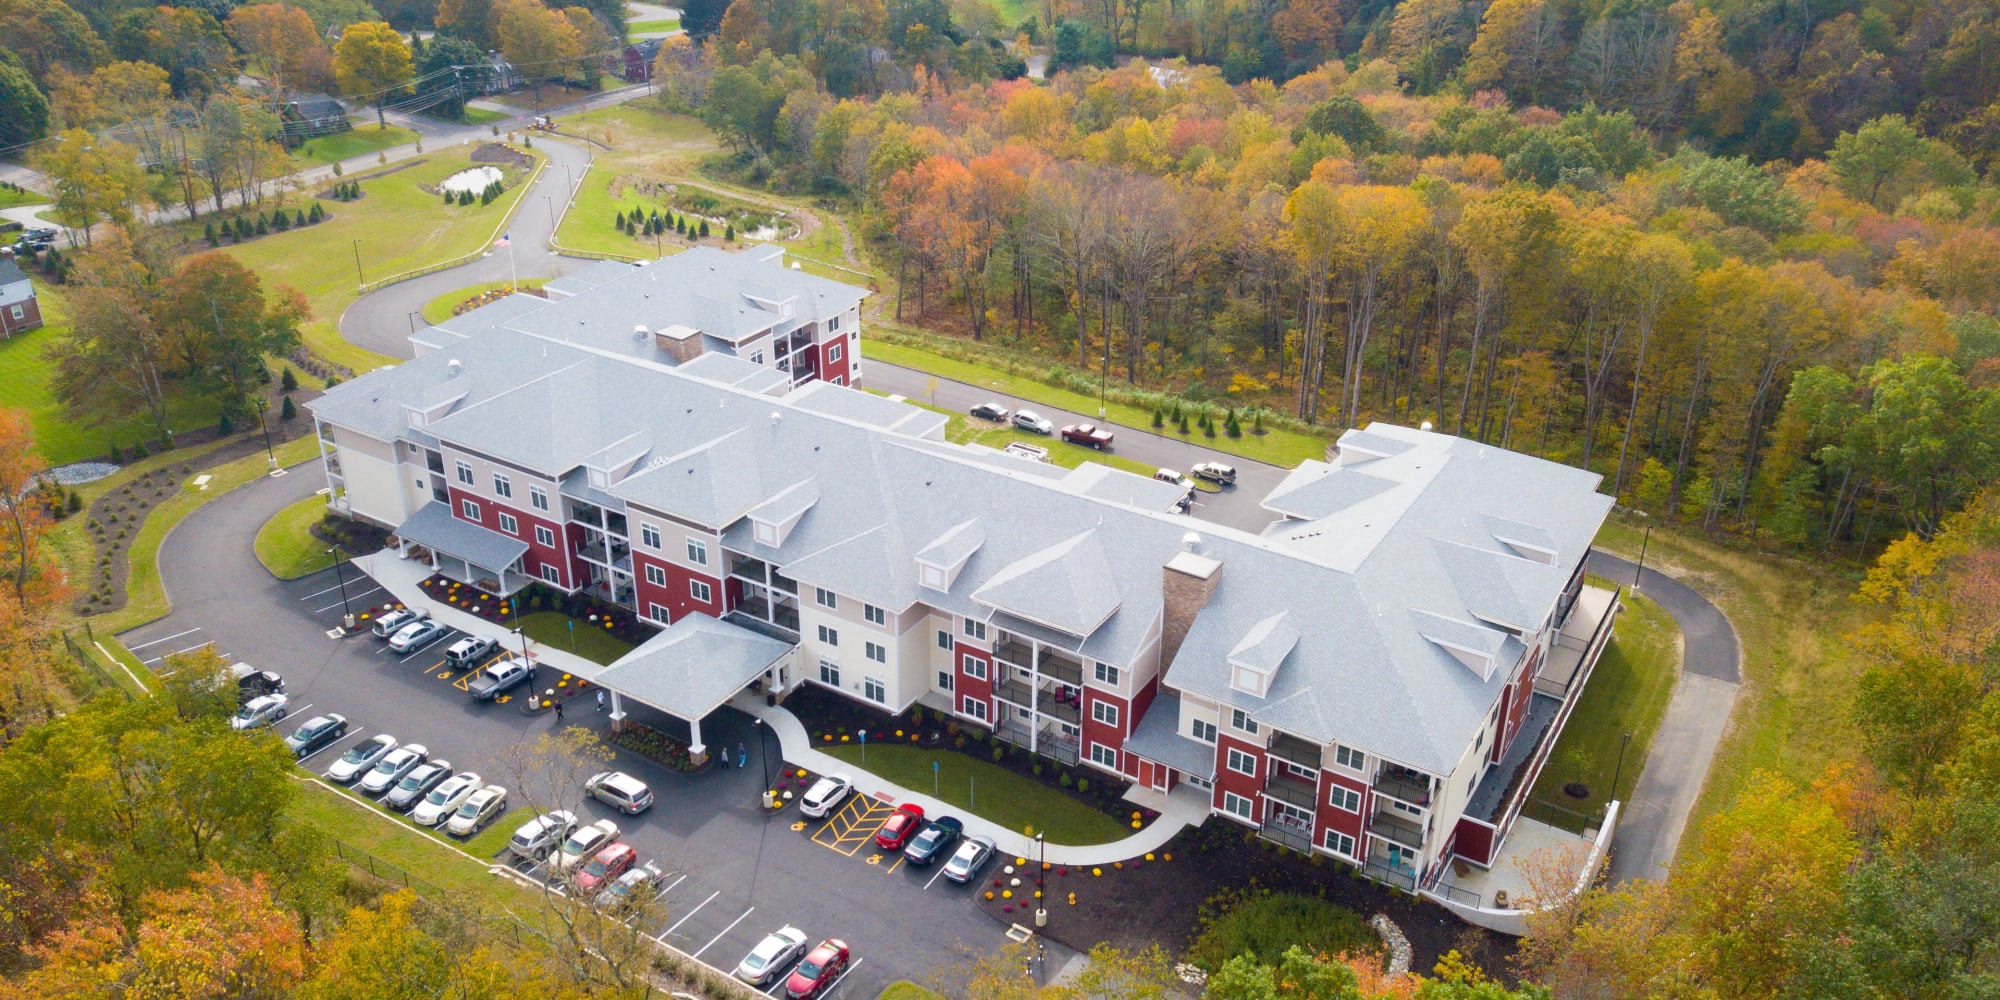 An aerial view of the Keystone Place at Newbury Brook in Torrington, Connecticut community